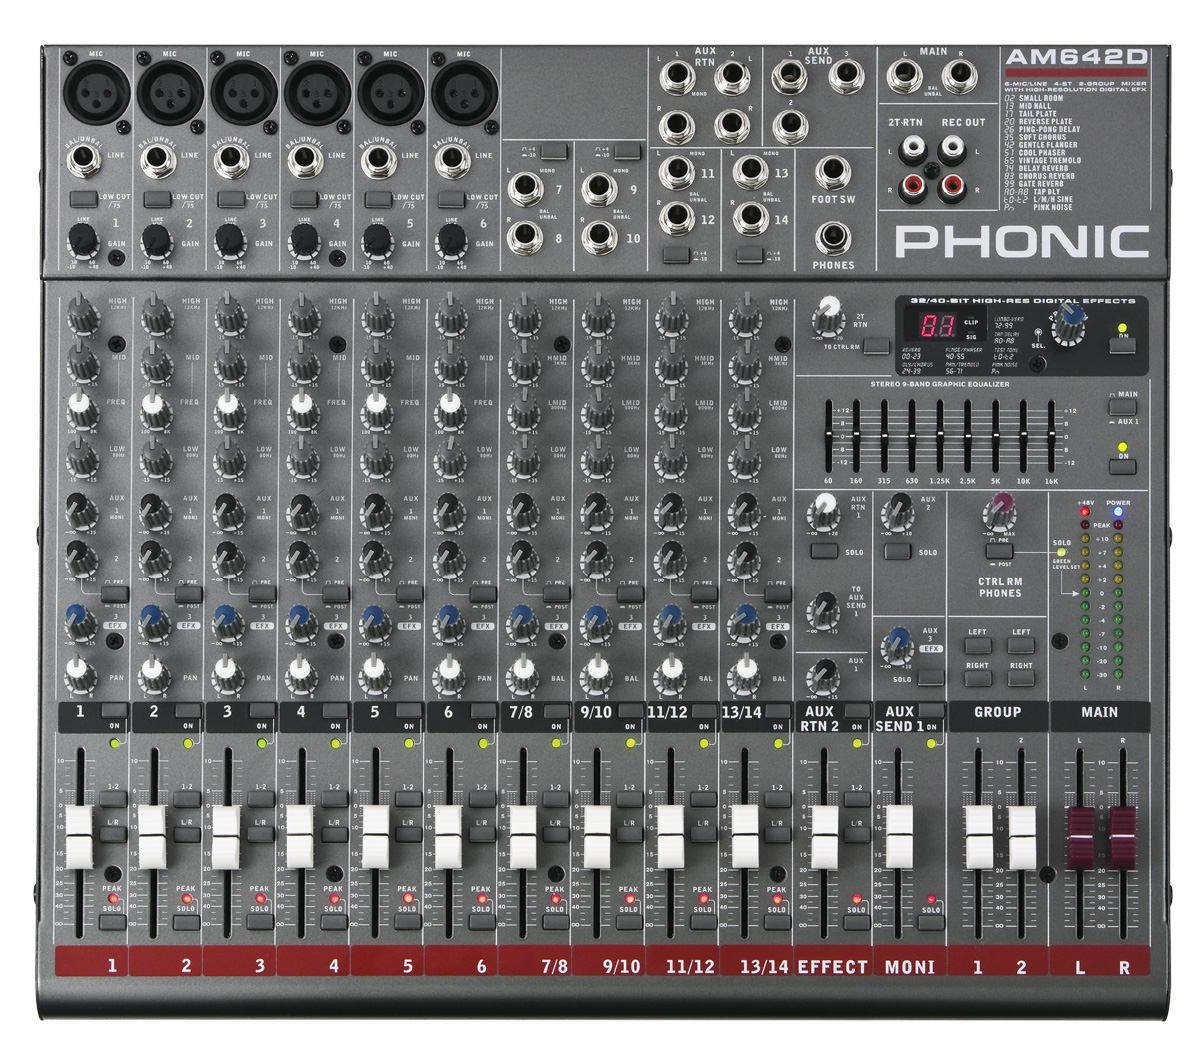 Phonic AM642D 6-Mic/Line 4-Stereo 2 Group Mixer with GEQ, FFX